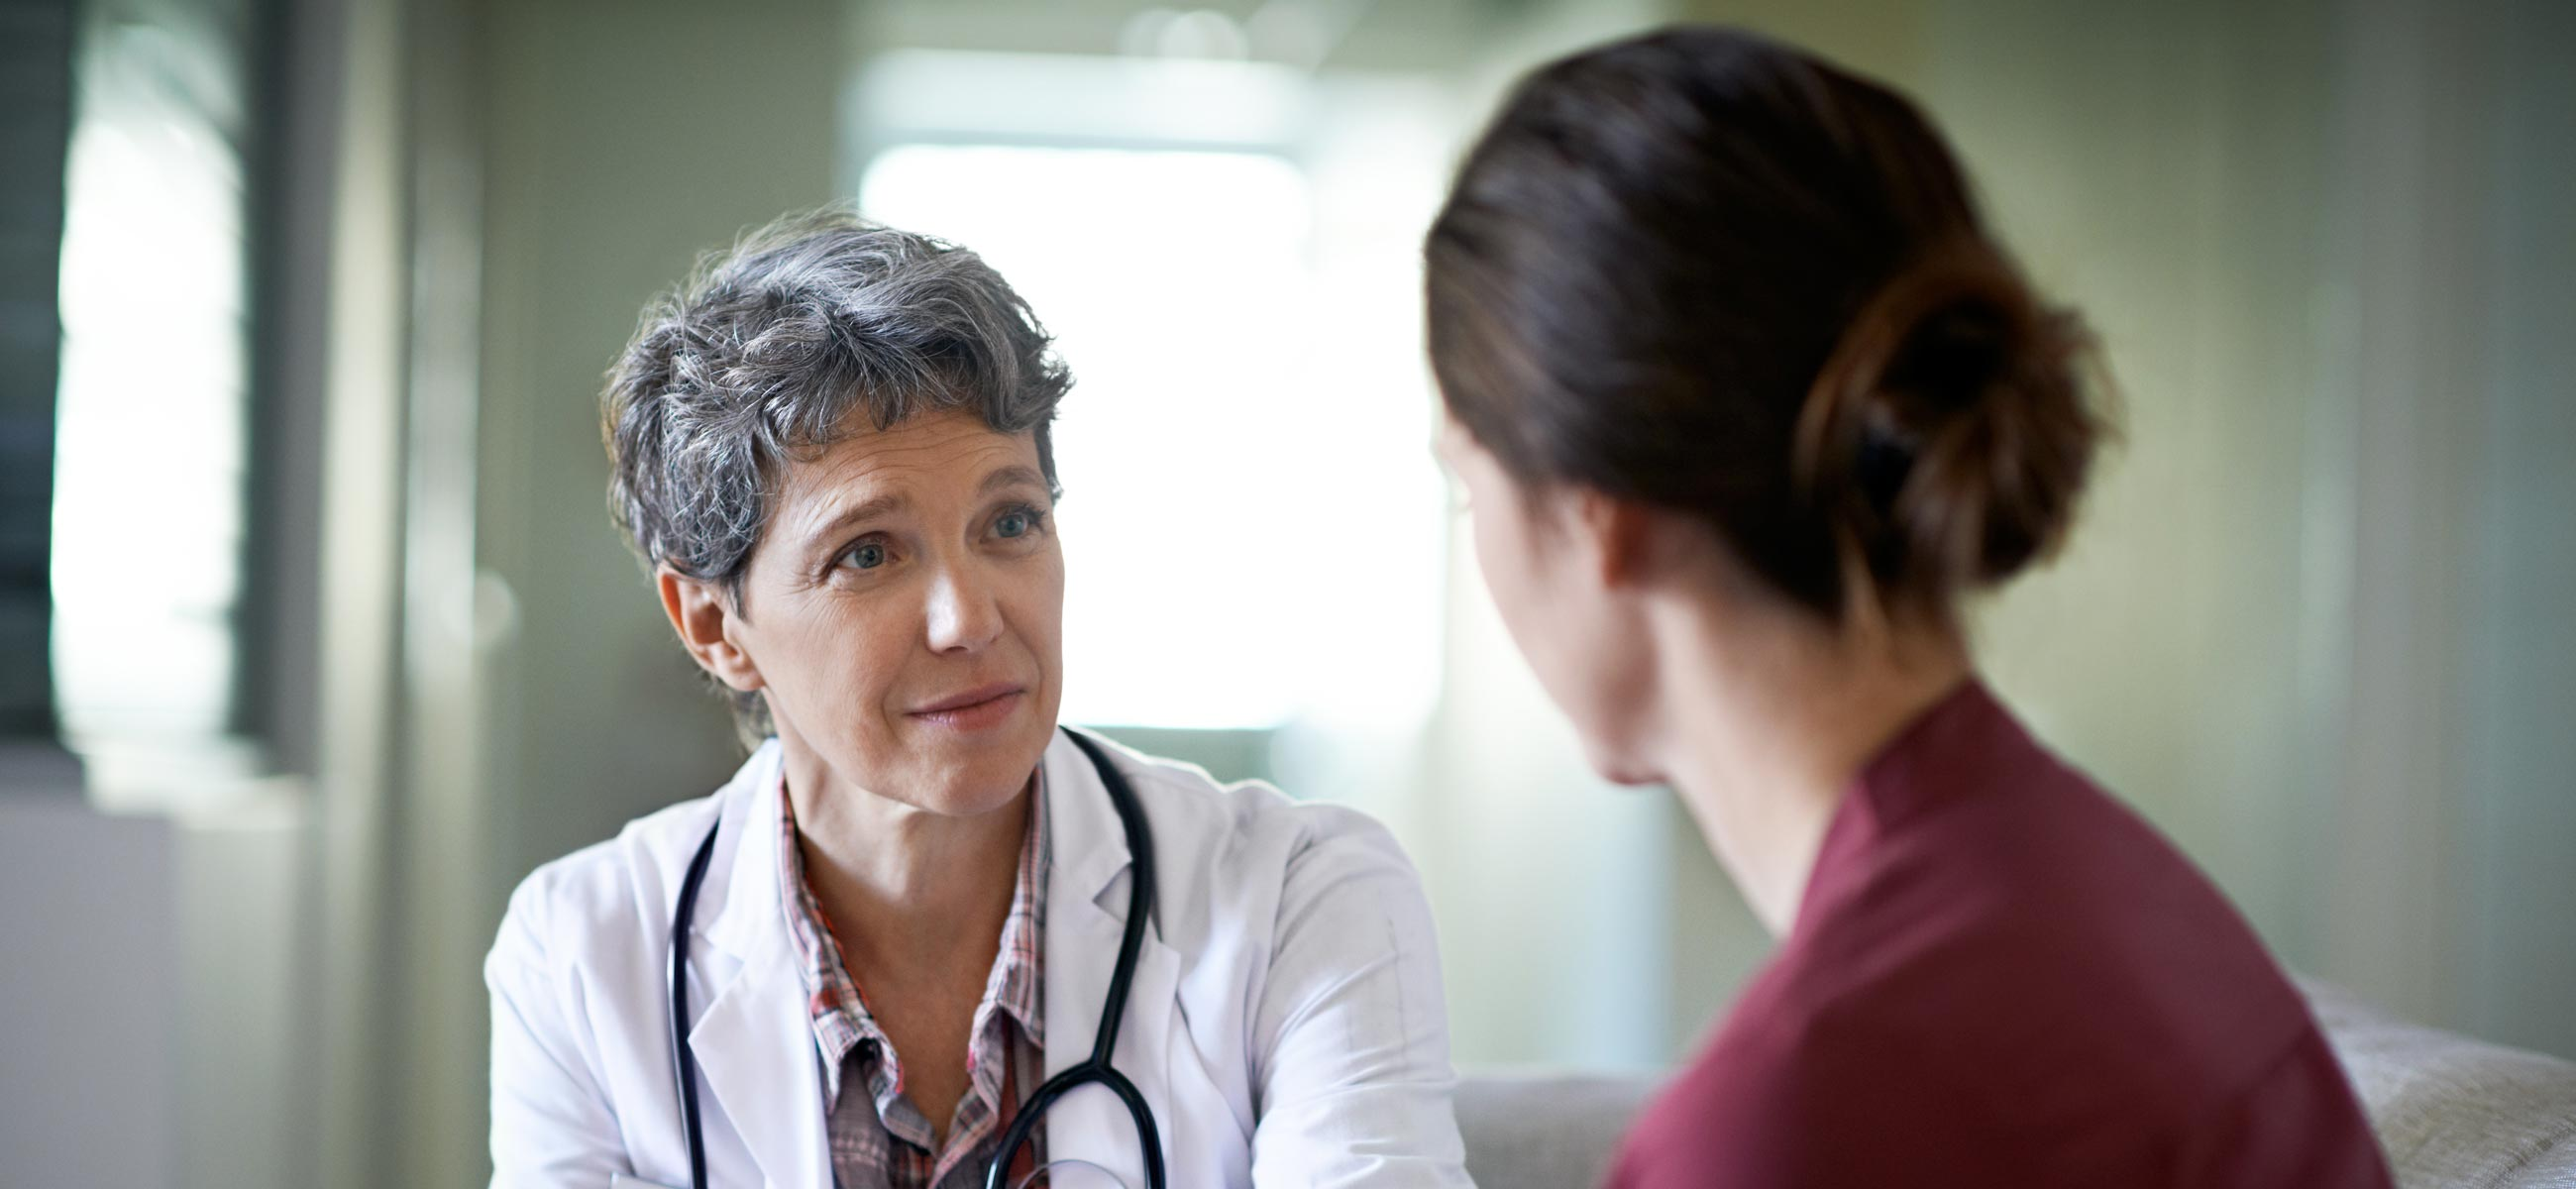 Narrative Medicine: Every Patient Has a Story